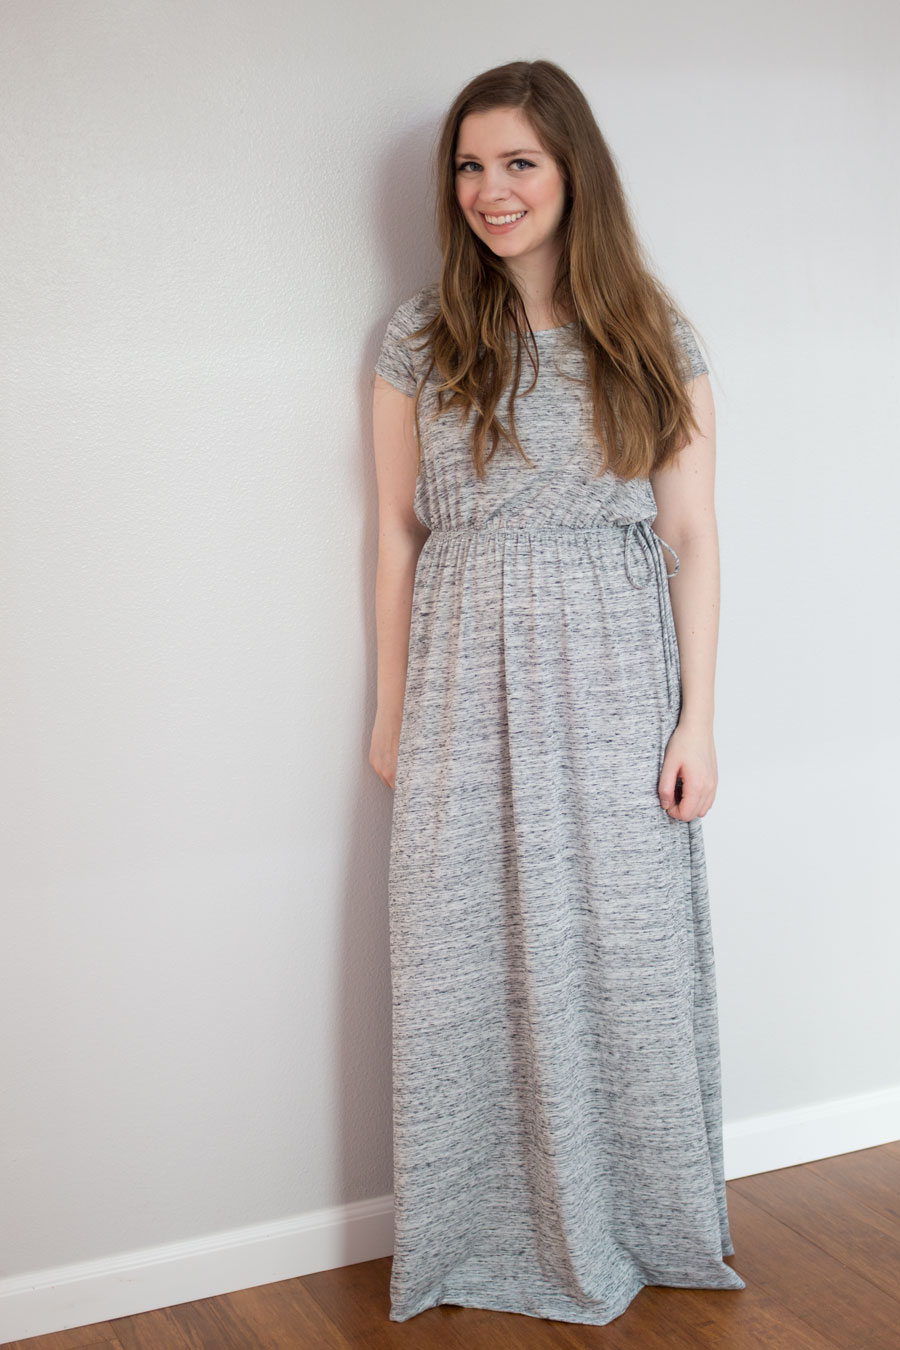 Stitch Fix June 2015 Review: Gilli Keli Maxi Dress in Gray / hellorigby seattle fashion blog